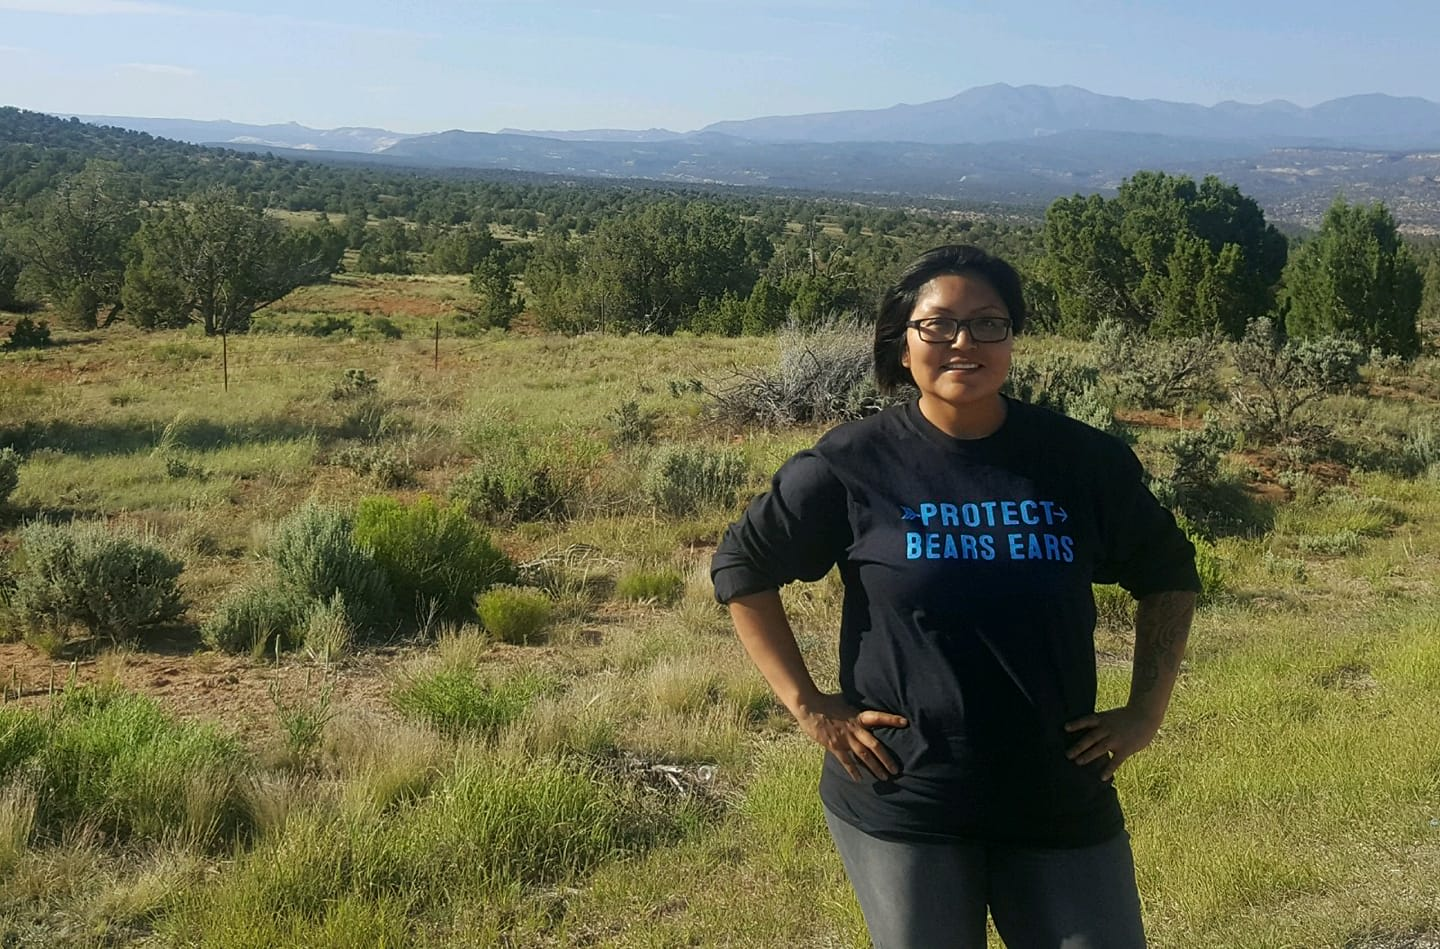 Navajo Nation citizen Carol Surveyor announces run for Congress in Utah